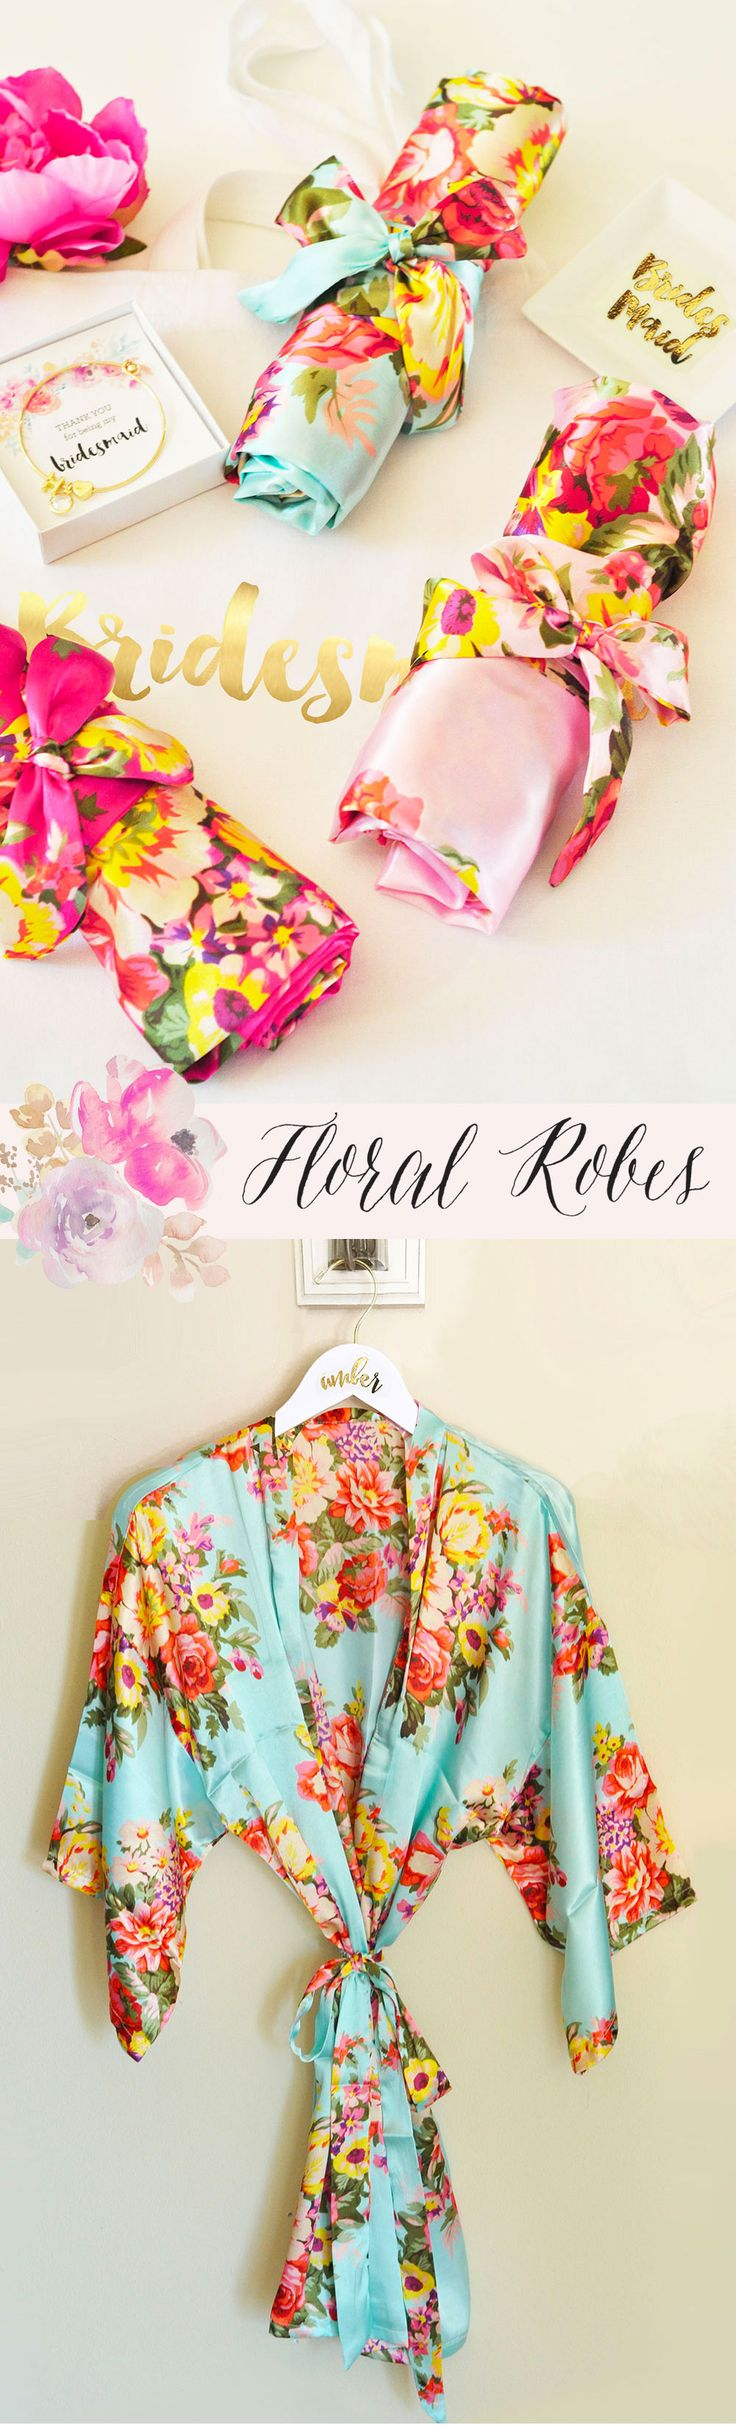 Floral Robes | Bridesmaid Robes | Bridesmaid Gifts | Gift Ideas for Women | Bachelorette Party Robes | Getting Ready Robes for Wedding Day